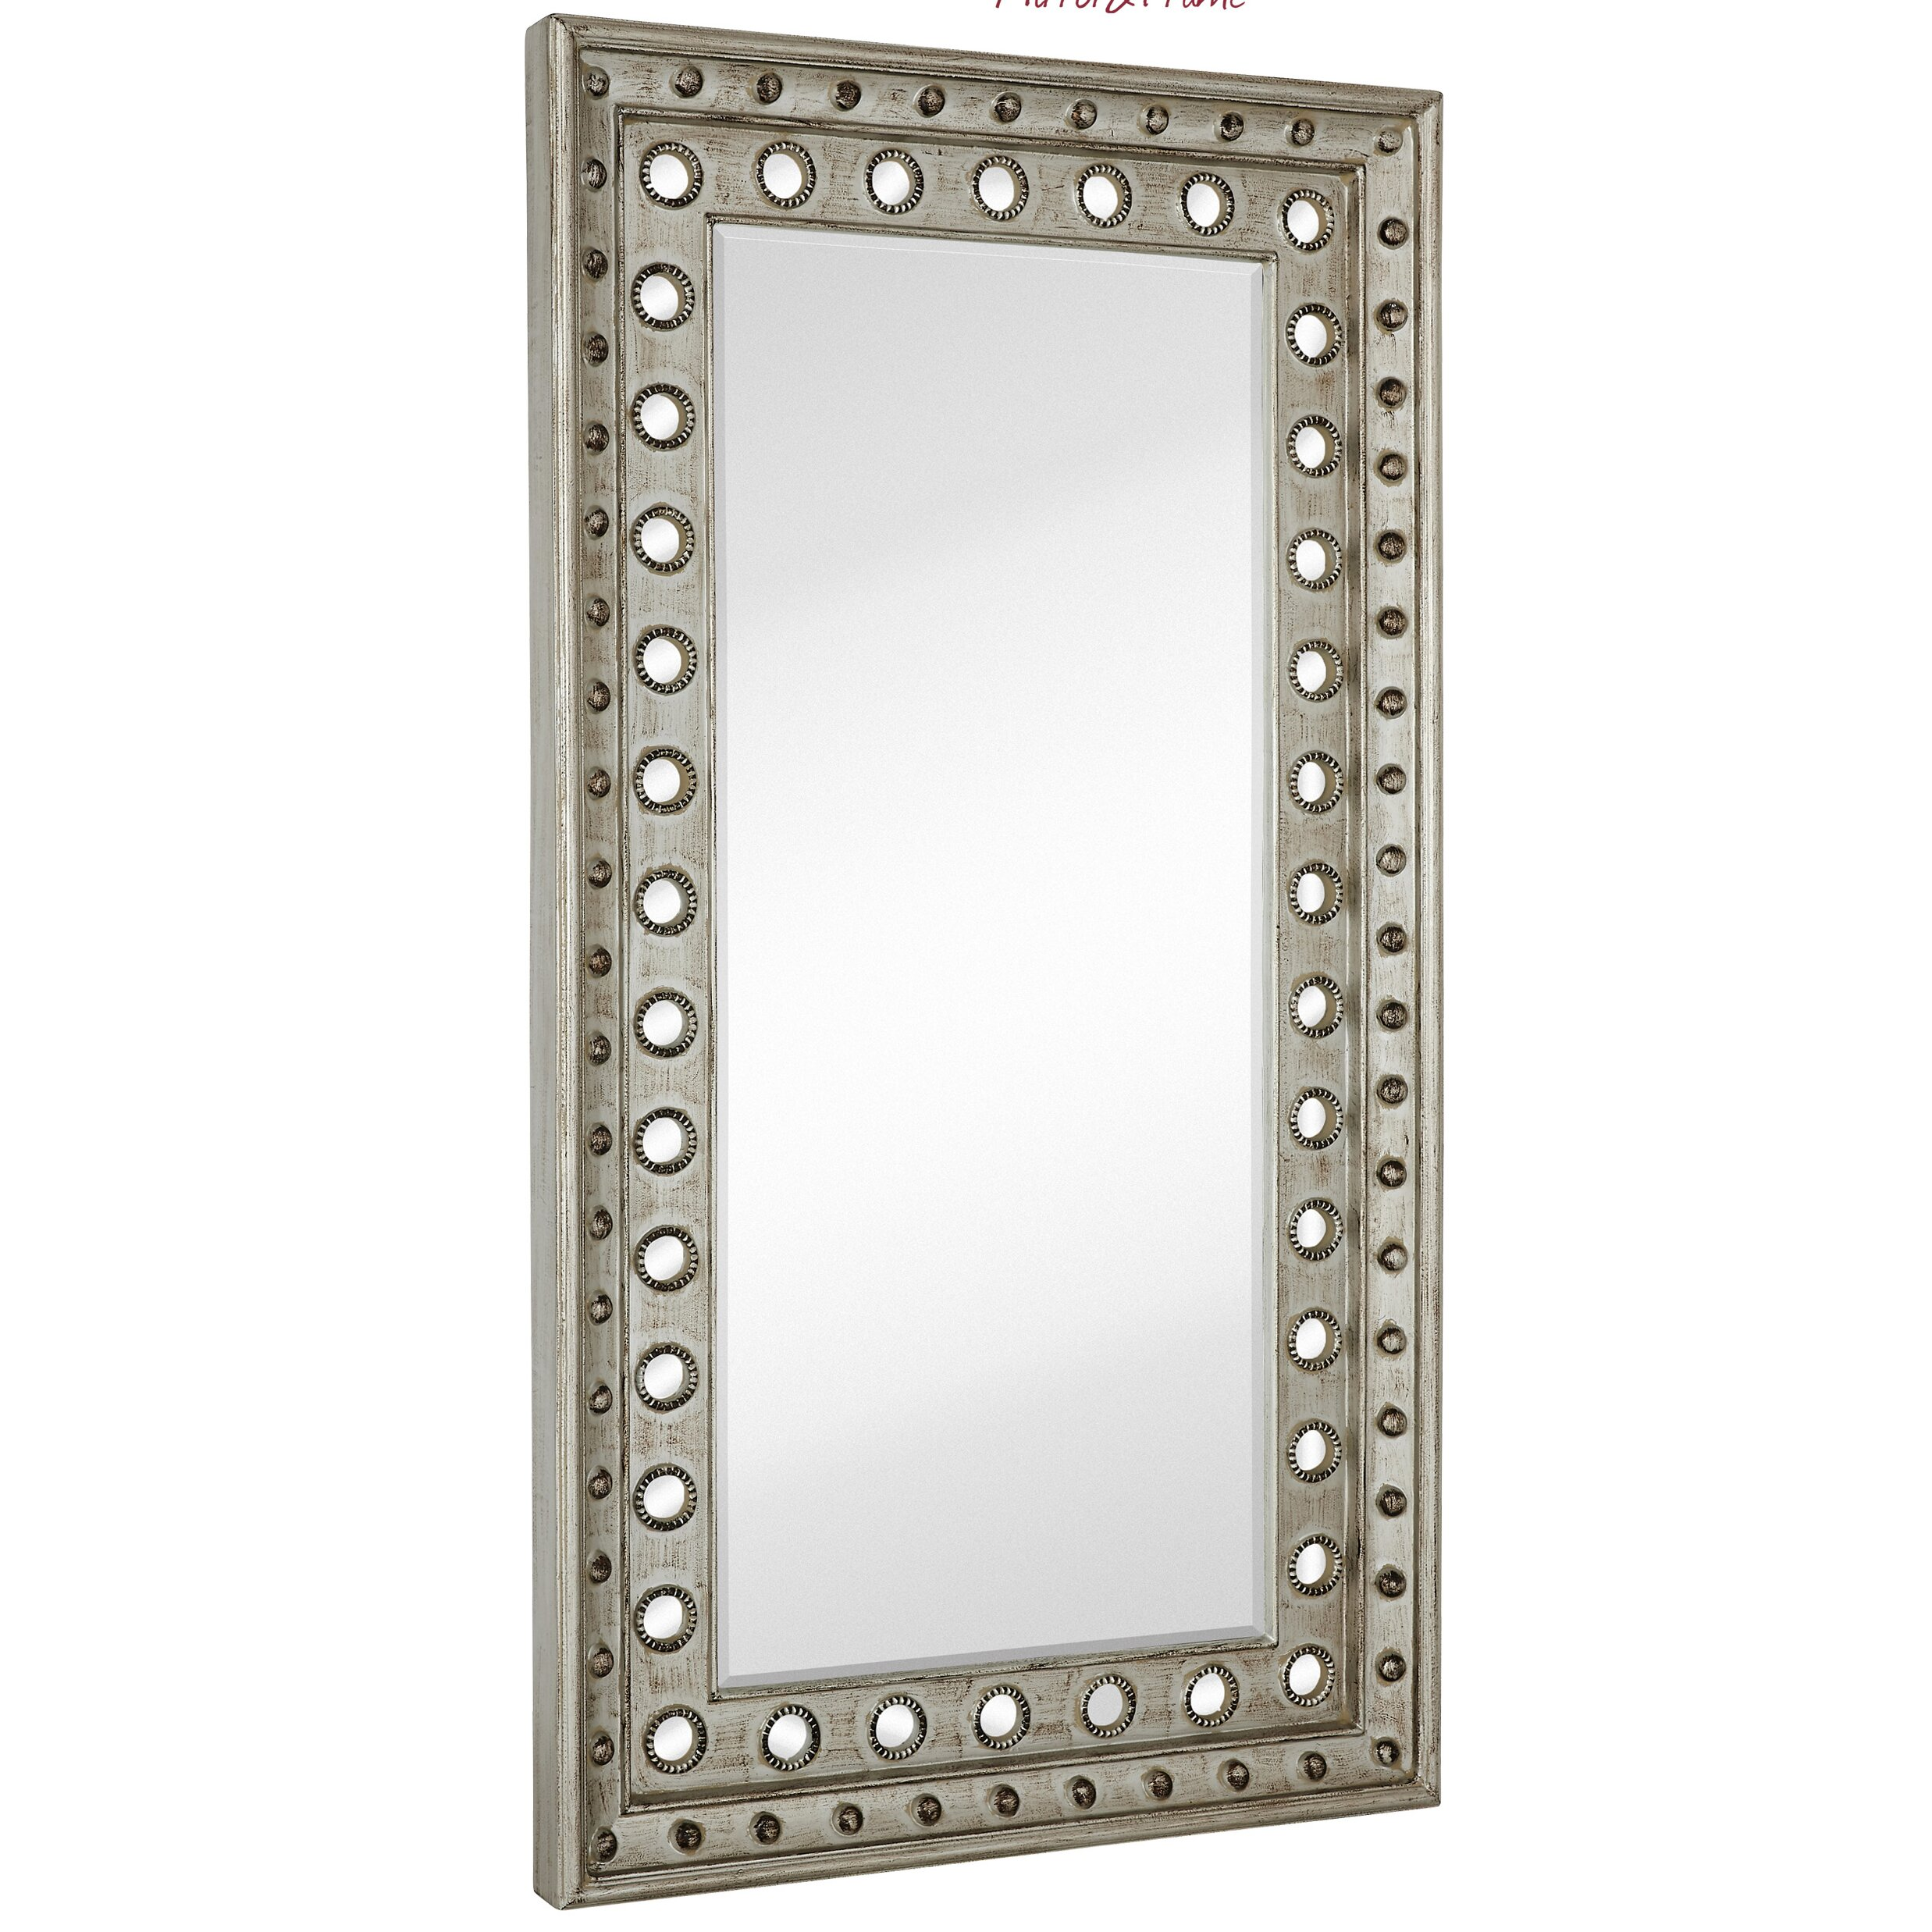 Silver Leaf Decoration Majestic Mirror Huge Rectangular Silver Leaf With Black Rub